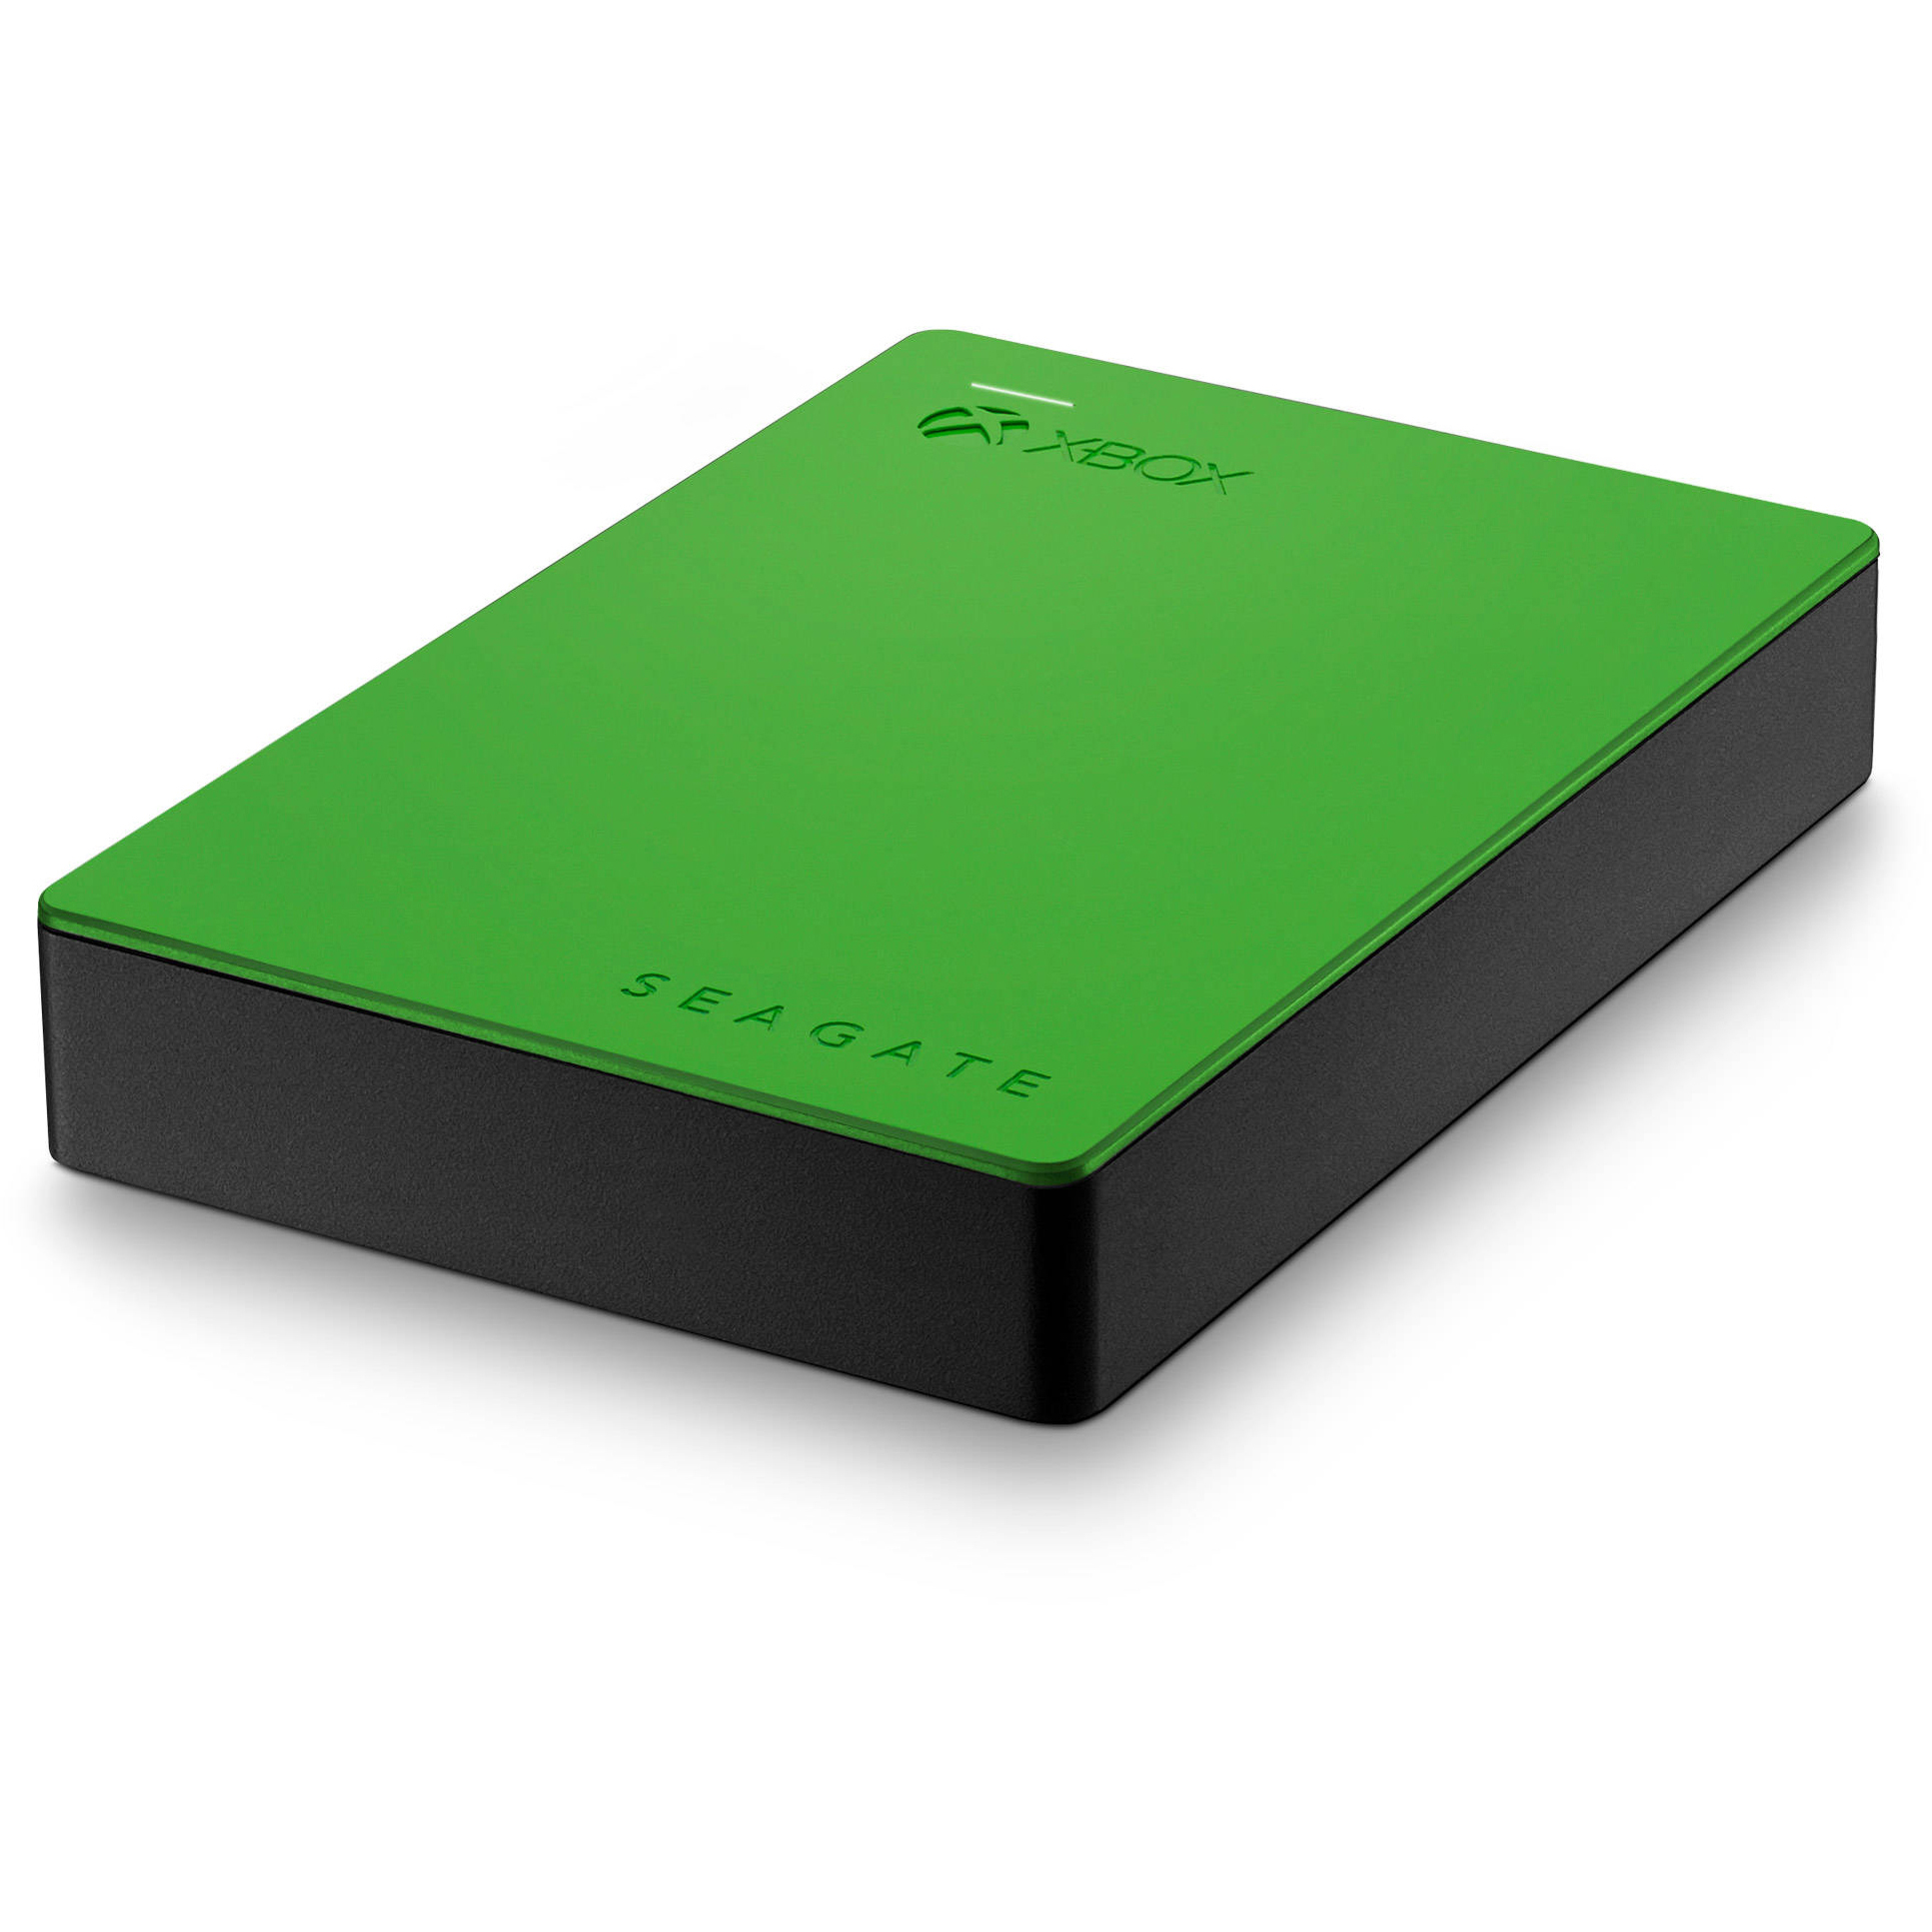 Original Seagate 4TB Xbox Portable Game Hard Drive (STEA4000402)